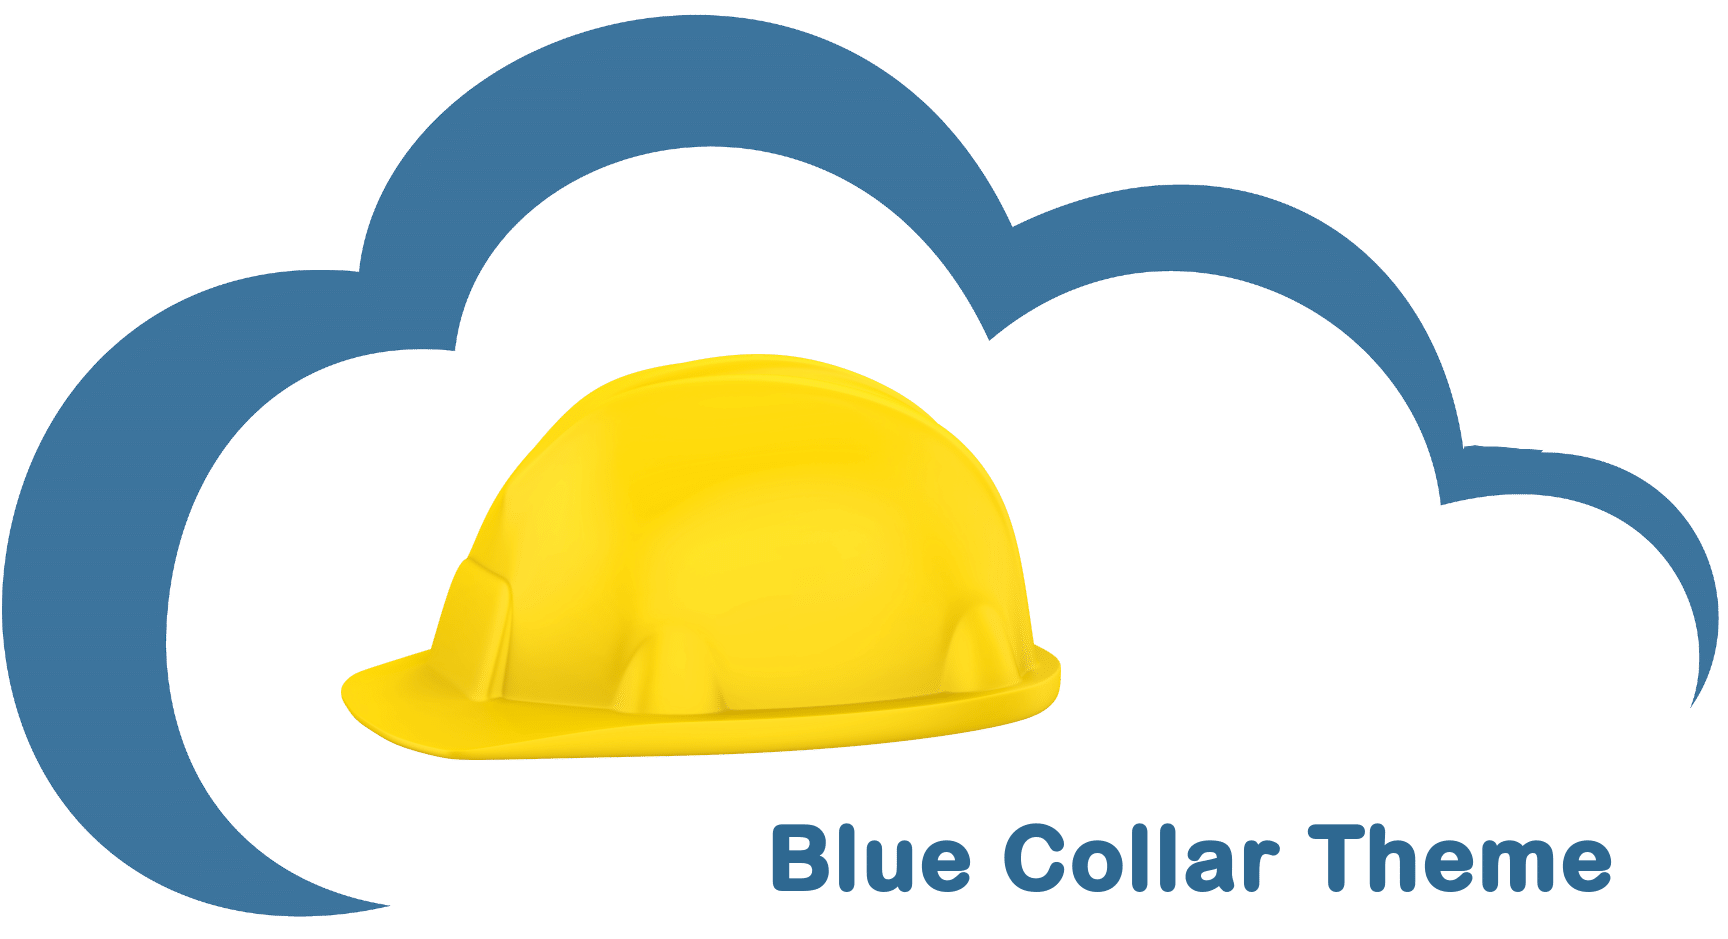 Blue Collar Theme cloud icon